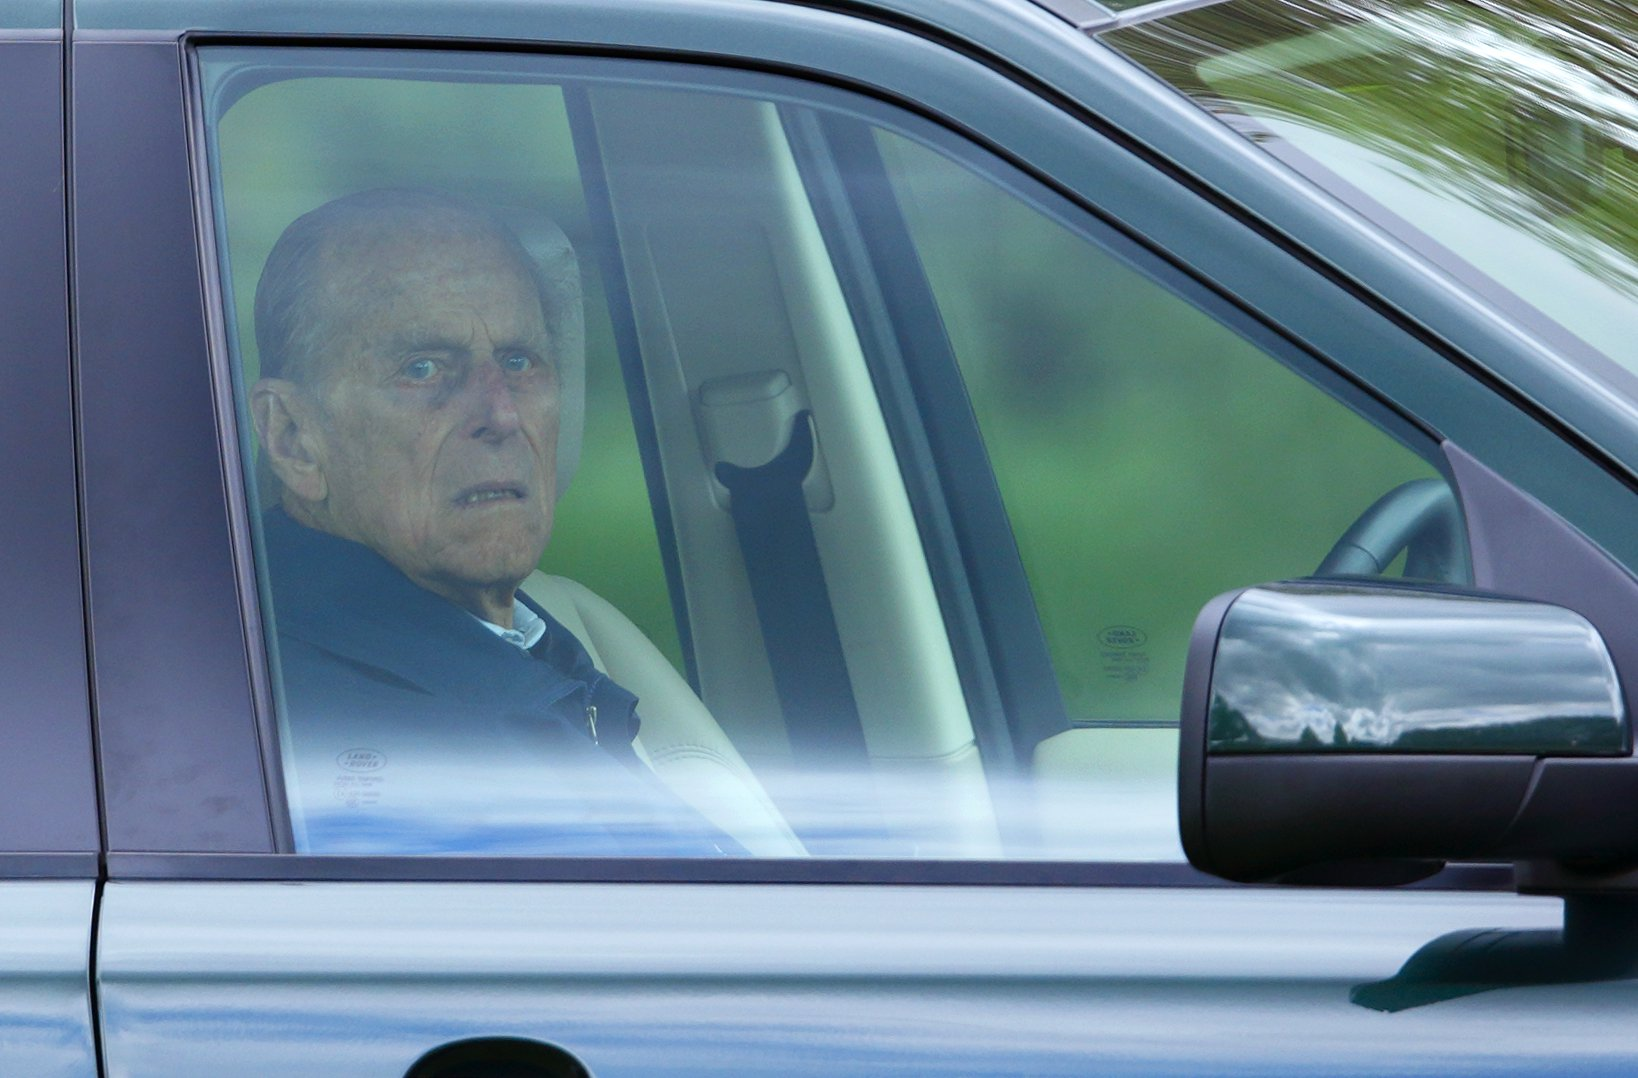 WINDSOR, UNITED KINGDOM - MAY 09: (EMBARGOED FOR PUBLICATION IN UK NEWSPAPERS UNTIL 48 HOURS AFTER CREATE DATE AND TIME) Prince Philip, Duke of Edinburgh sits in his Land Rover Freelander to watch the dressage phase of the Land Rover International Driving Grand Prix competition on day 2 of the Royal Windsor Horse Show on May 9, 2013 in Windsor, England. (Photo by Max Mumby/Indigo/Getty Images)